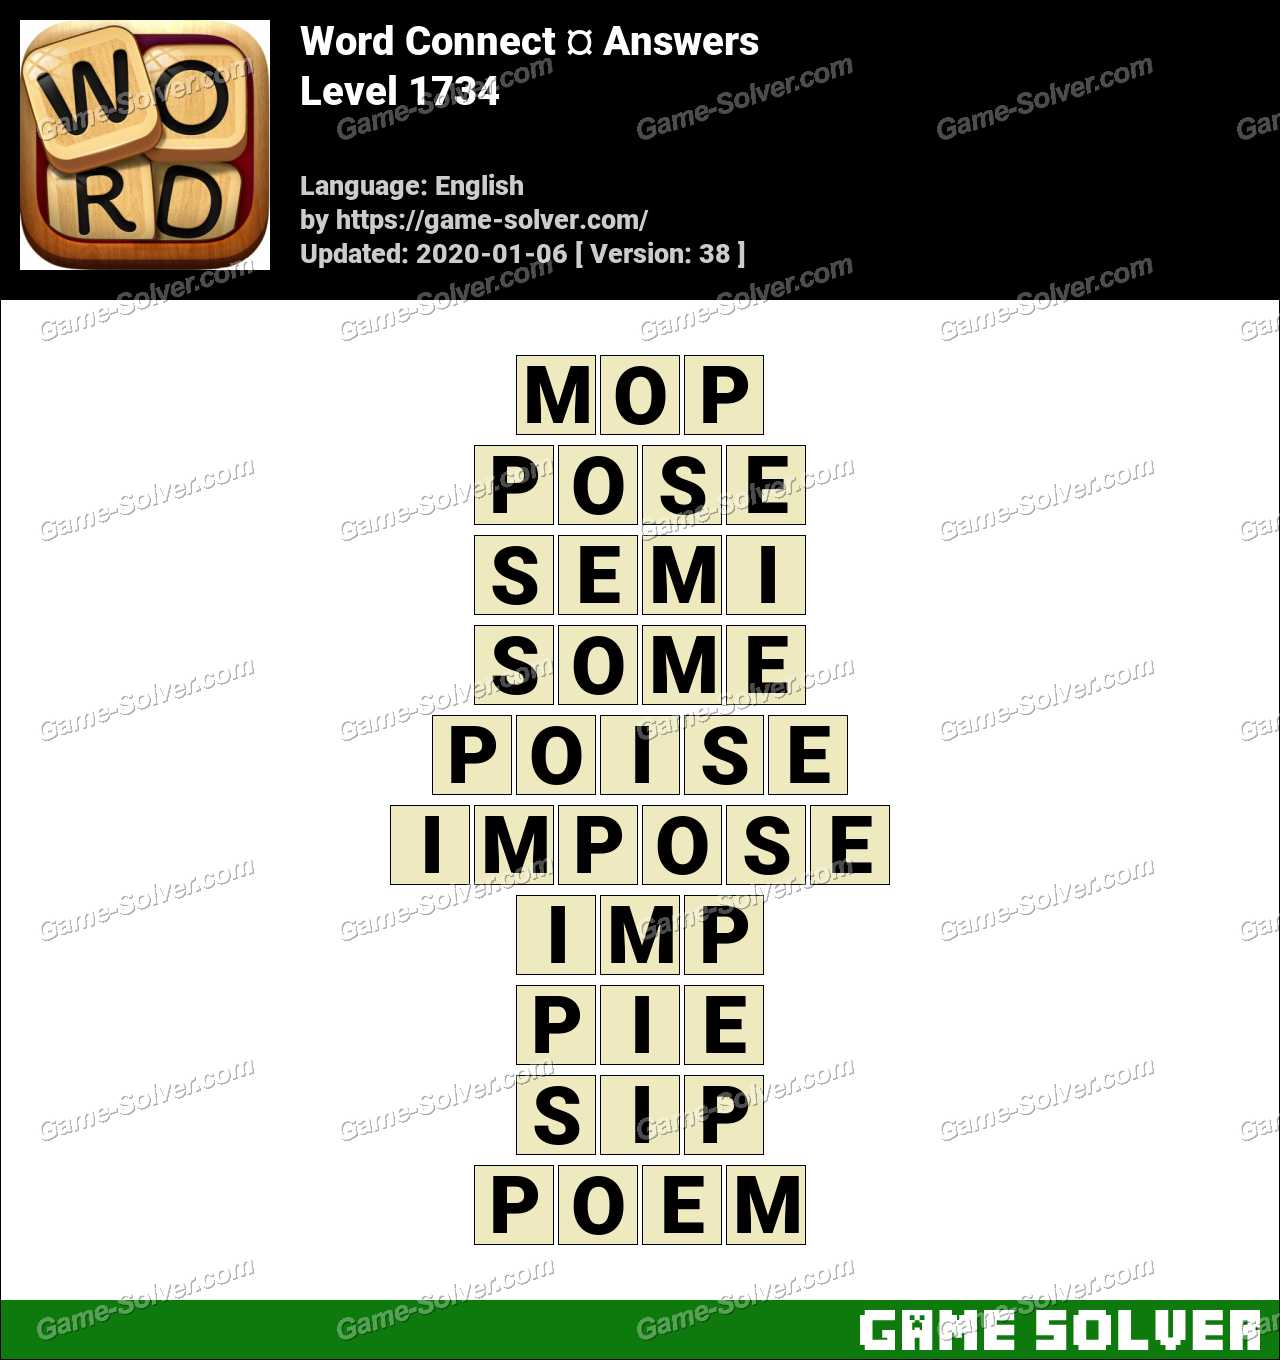 Word Connect Level 1734 Answers